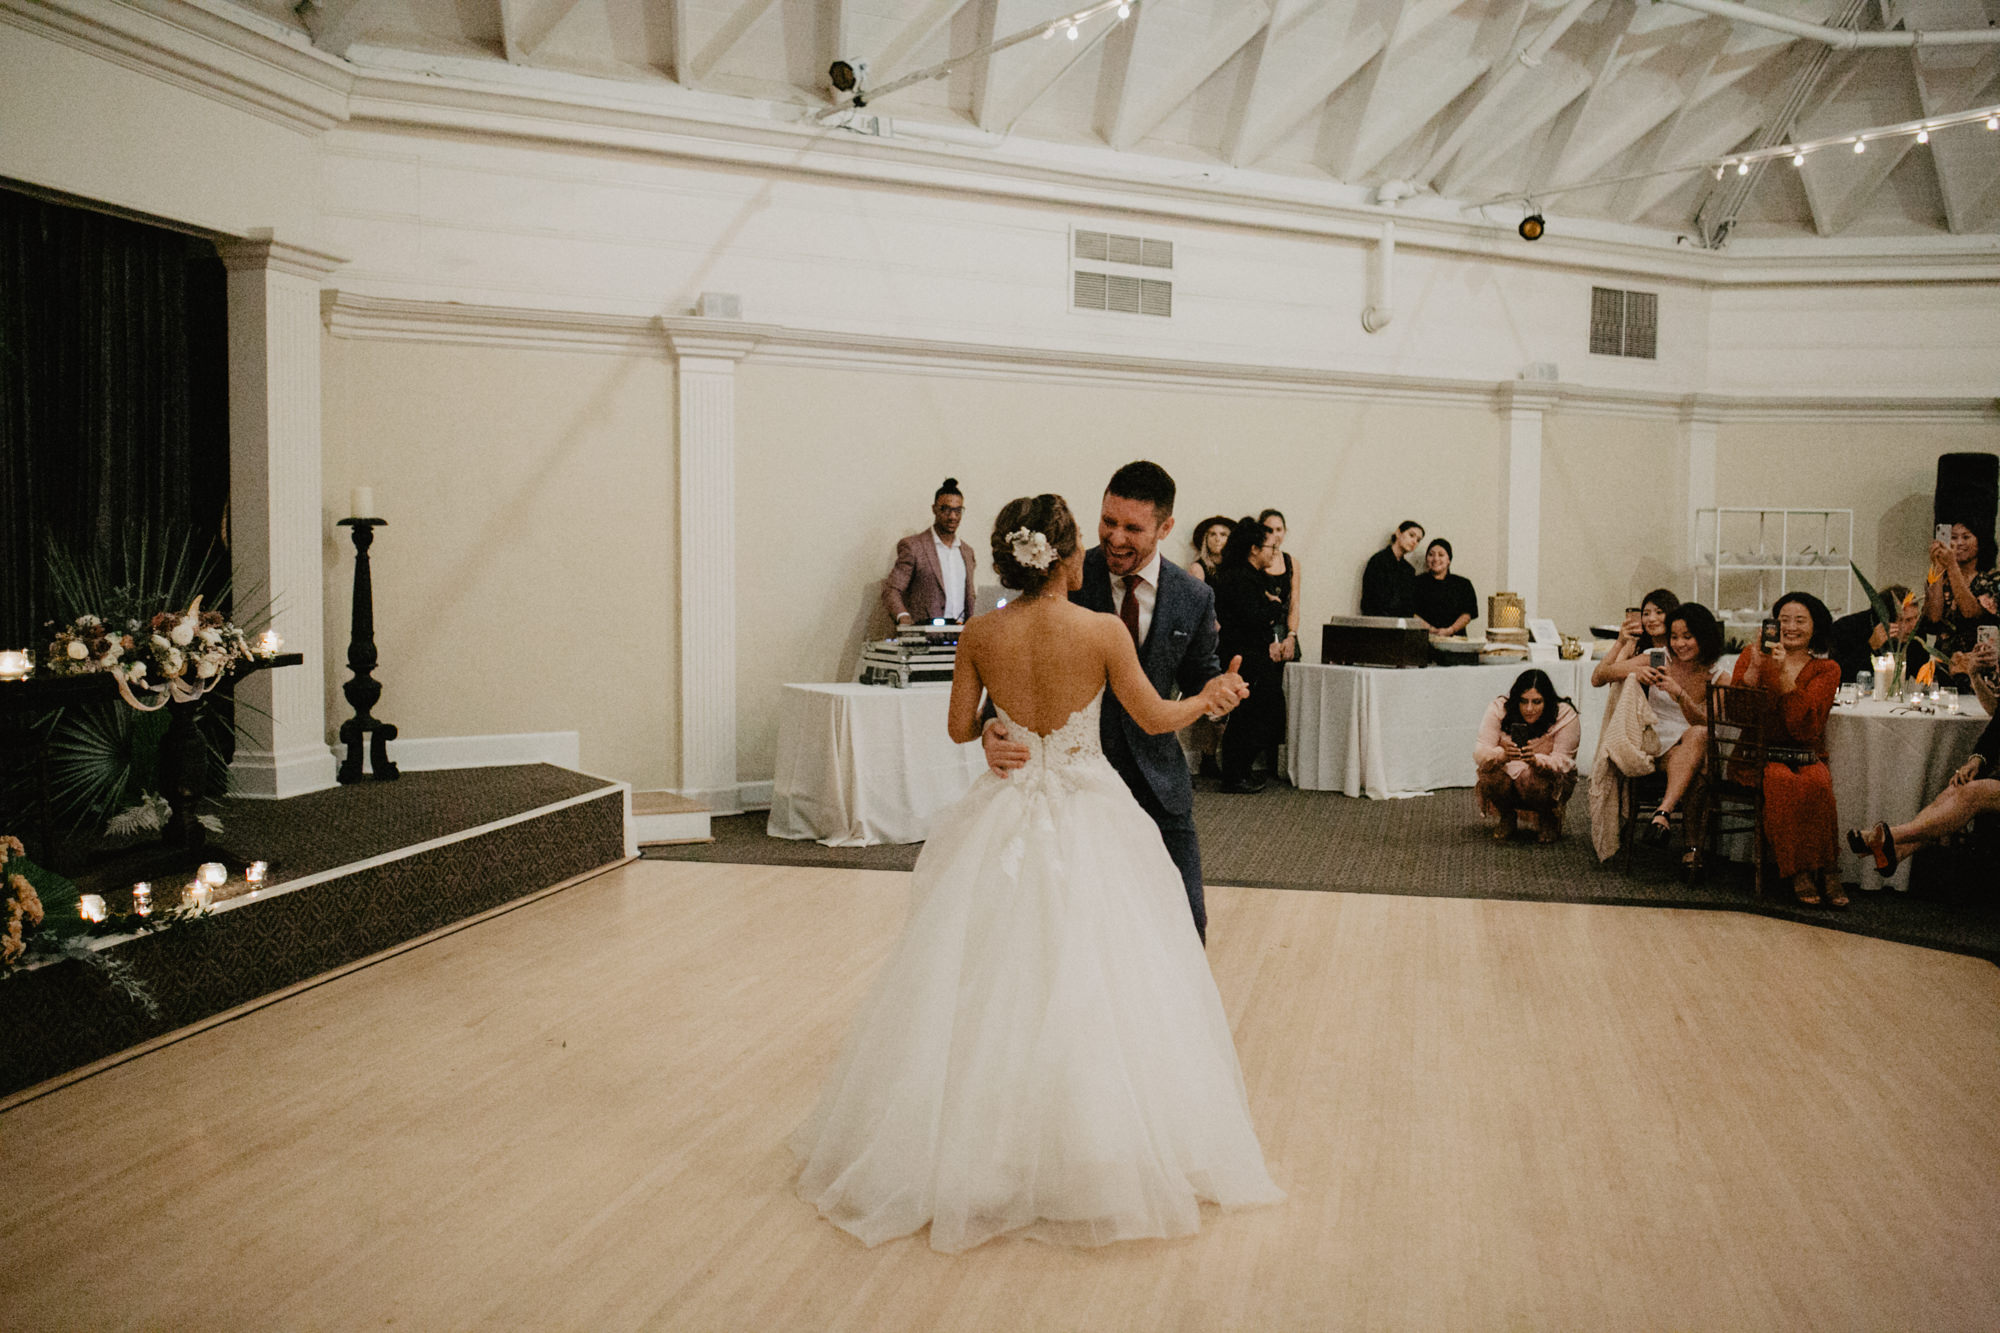 san clemente casino wedding photographer -94.jpg